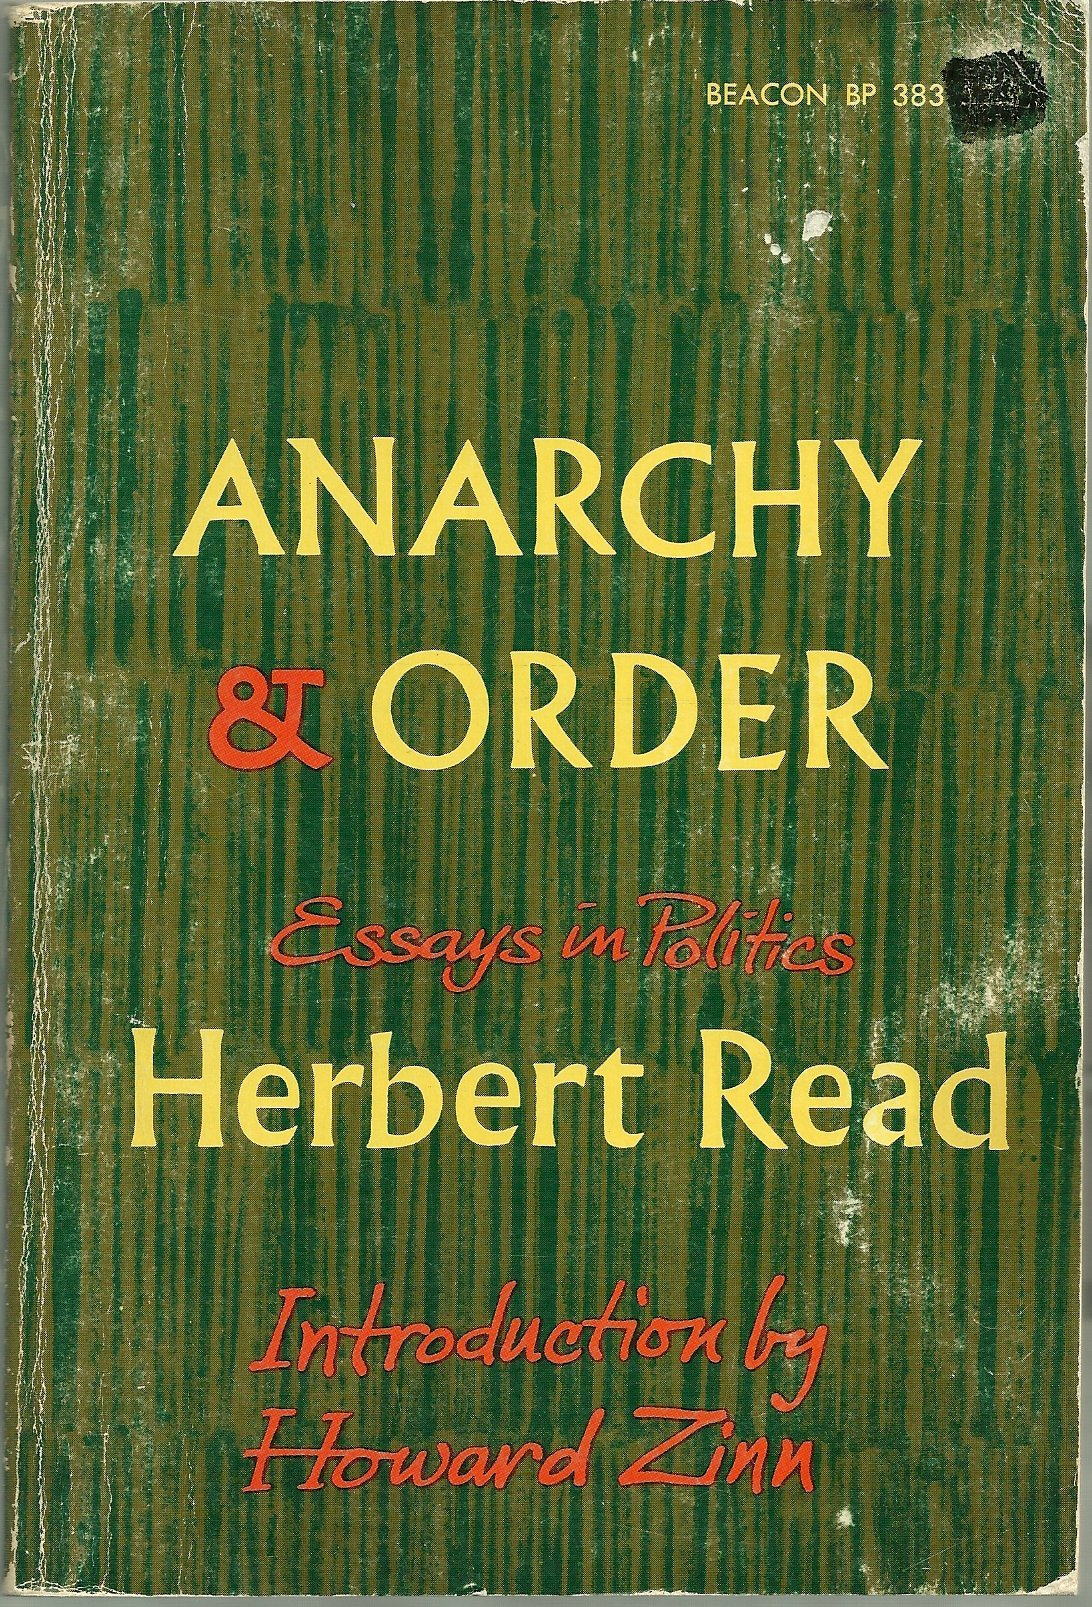 anarchy and order essays in politics herbert edward howard  anarchy and order essays in politics herbert edward howard zinn 9780807043936 amazon com books